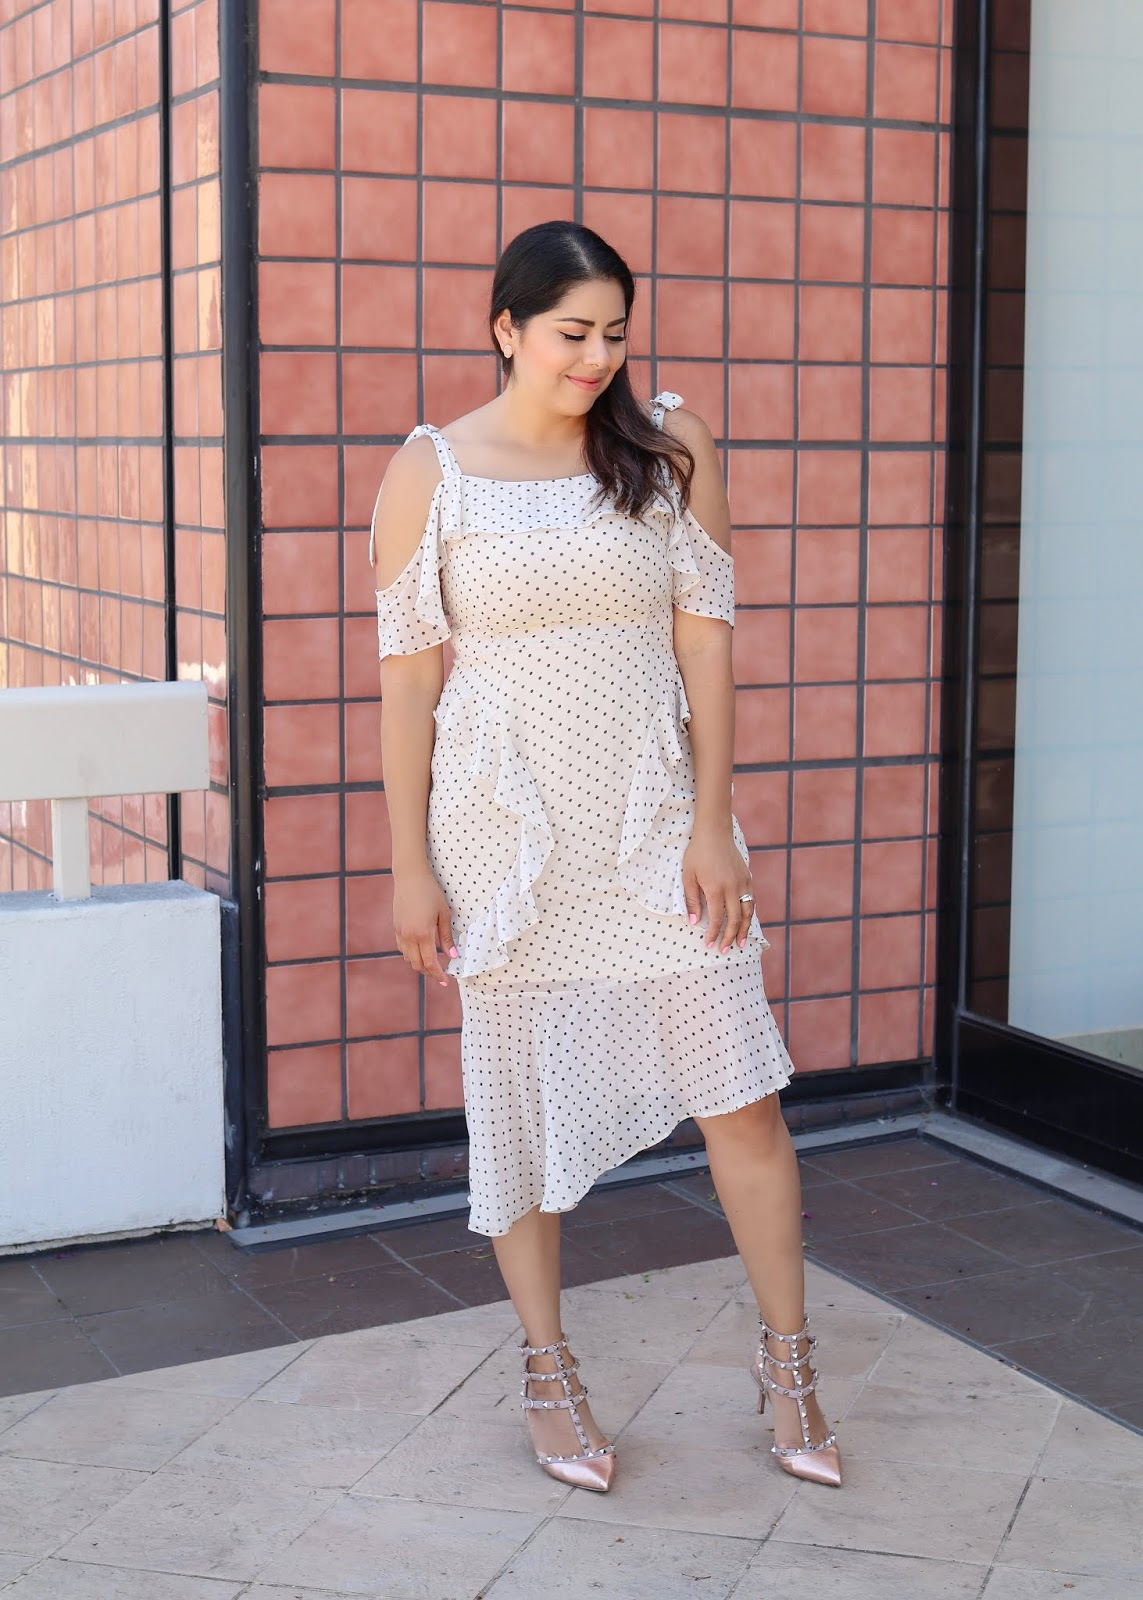 Polka Dot and ruffled dress, polka dot trend 2018, san diego fashion